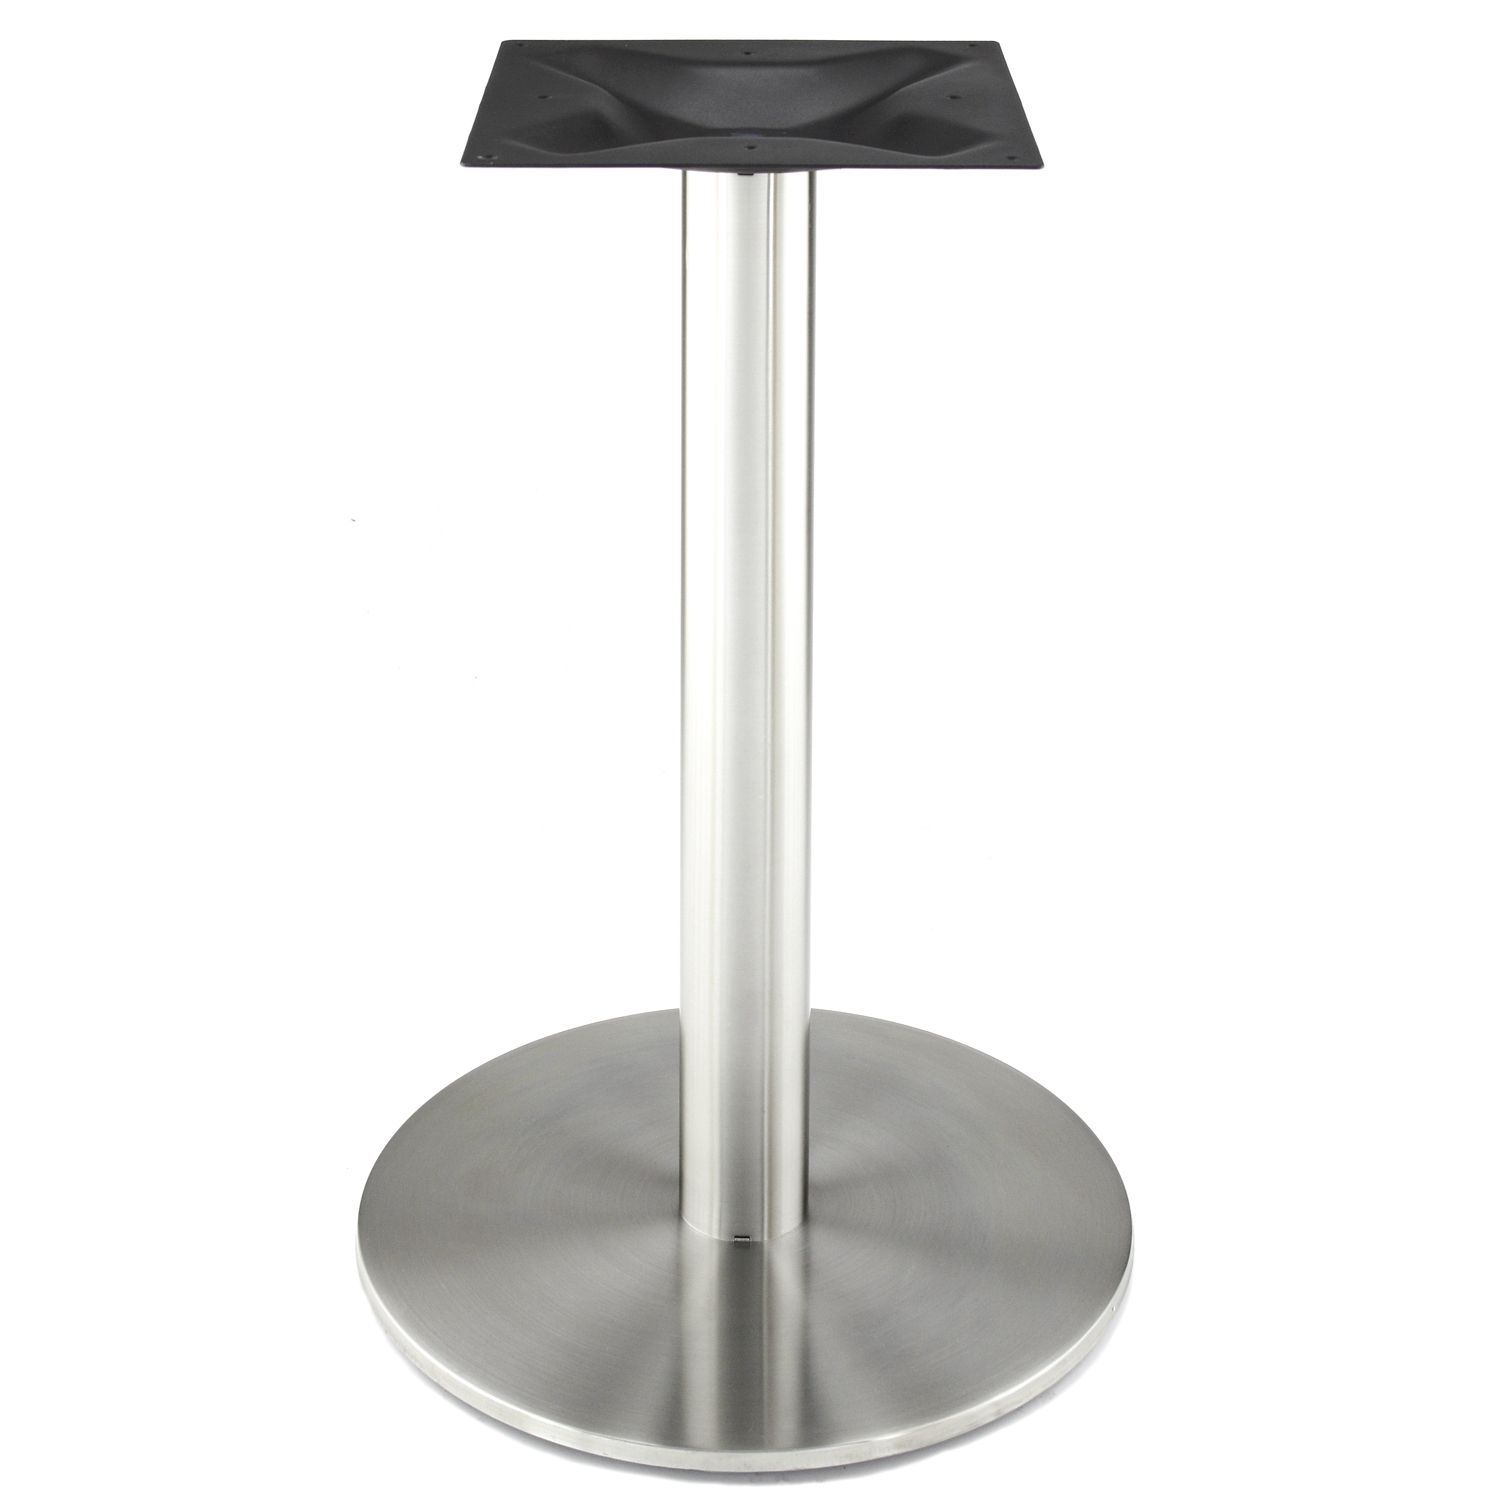 RFL450 Stainless Steel Table Base